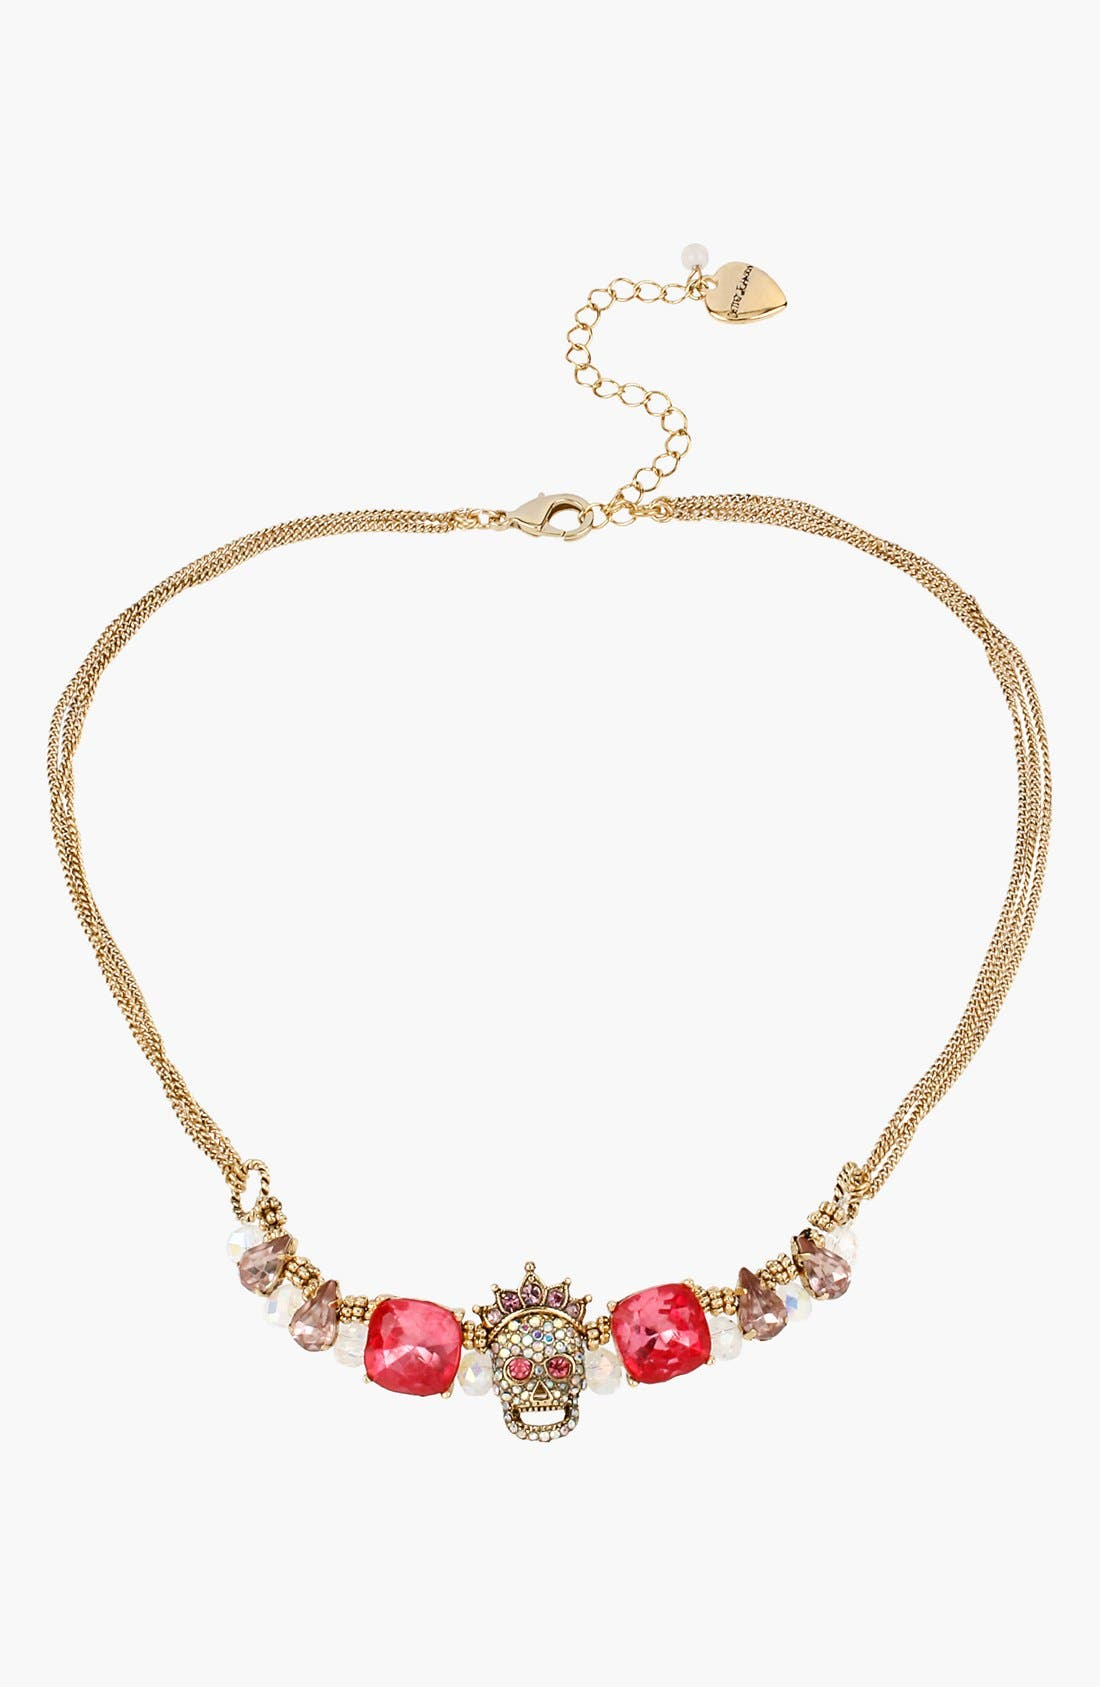 Main Image - Betsey Johnson 'Prom Party' Frontal Necklace